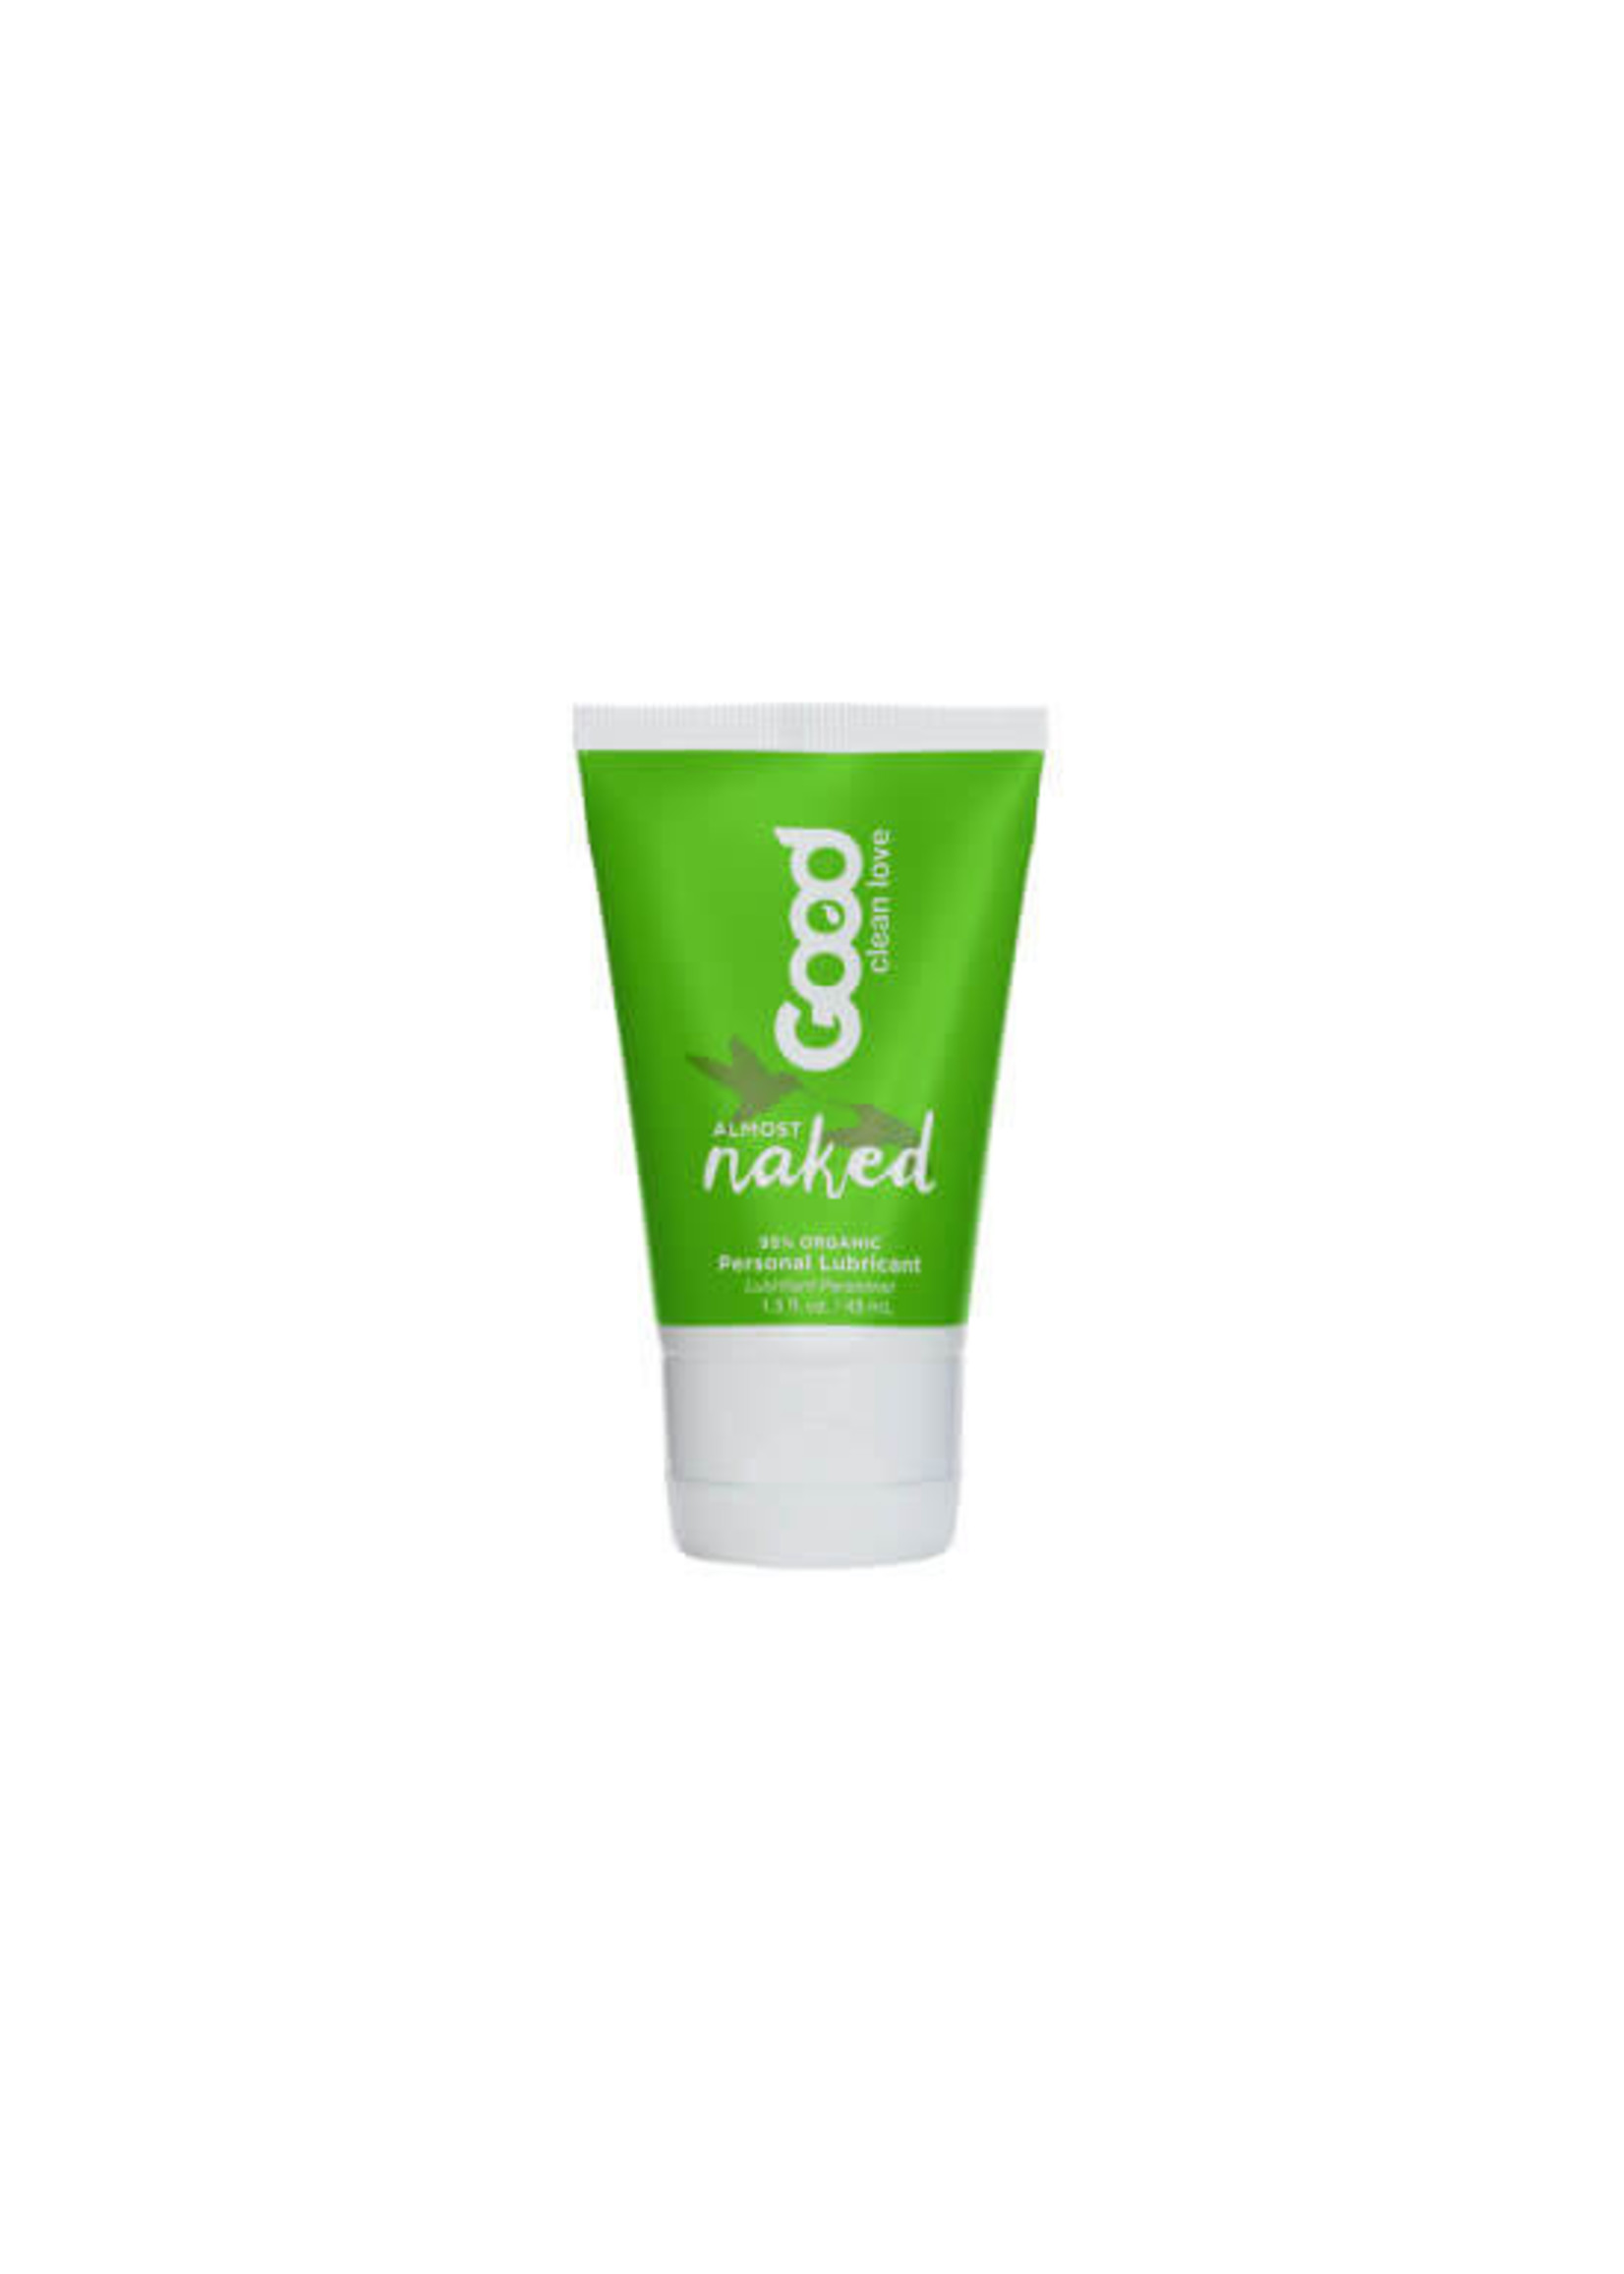 GCL - Almost Naked 1.5fl oz.